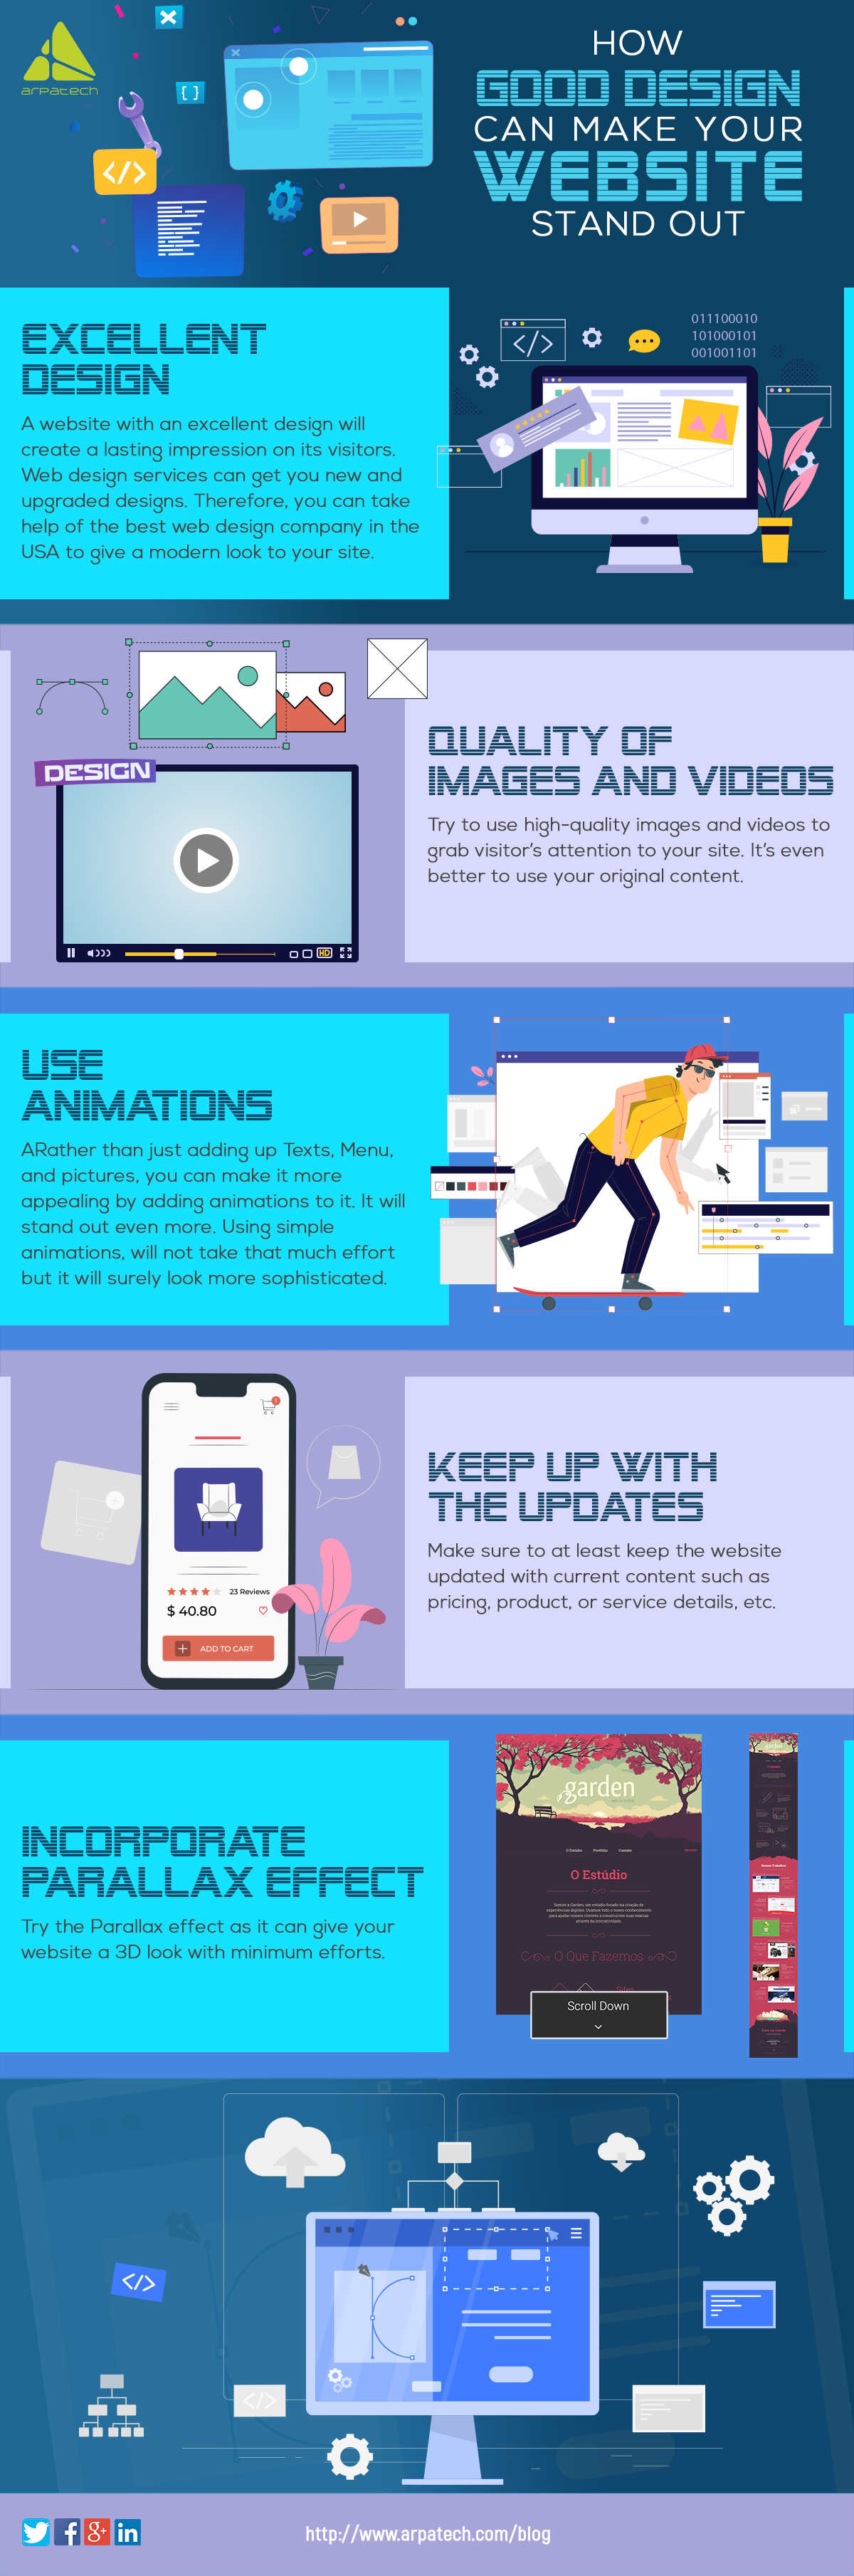 good-design-can-make-your-website-stand-out-infographics